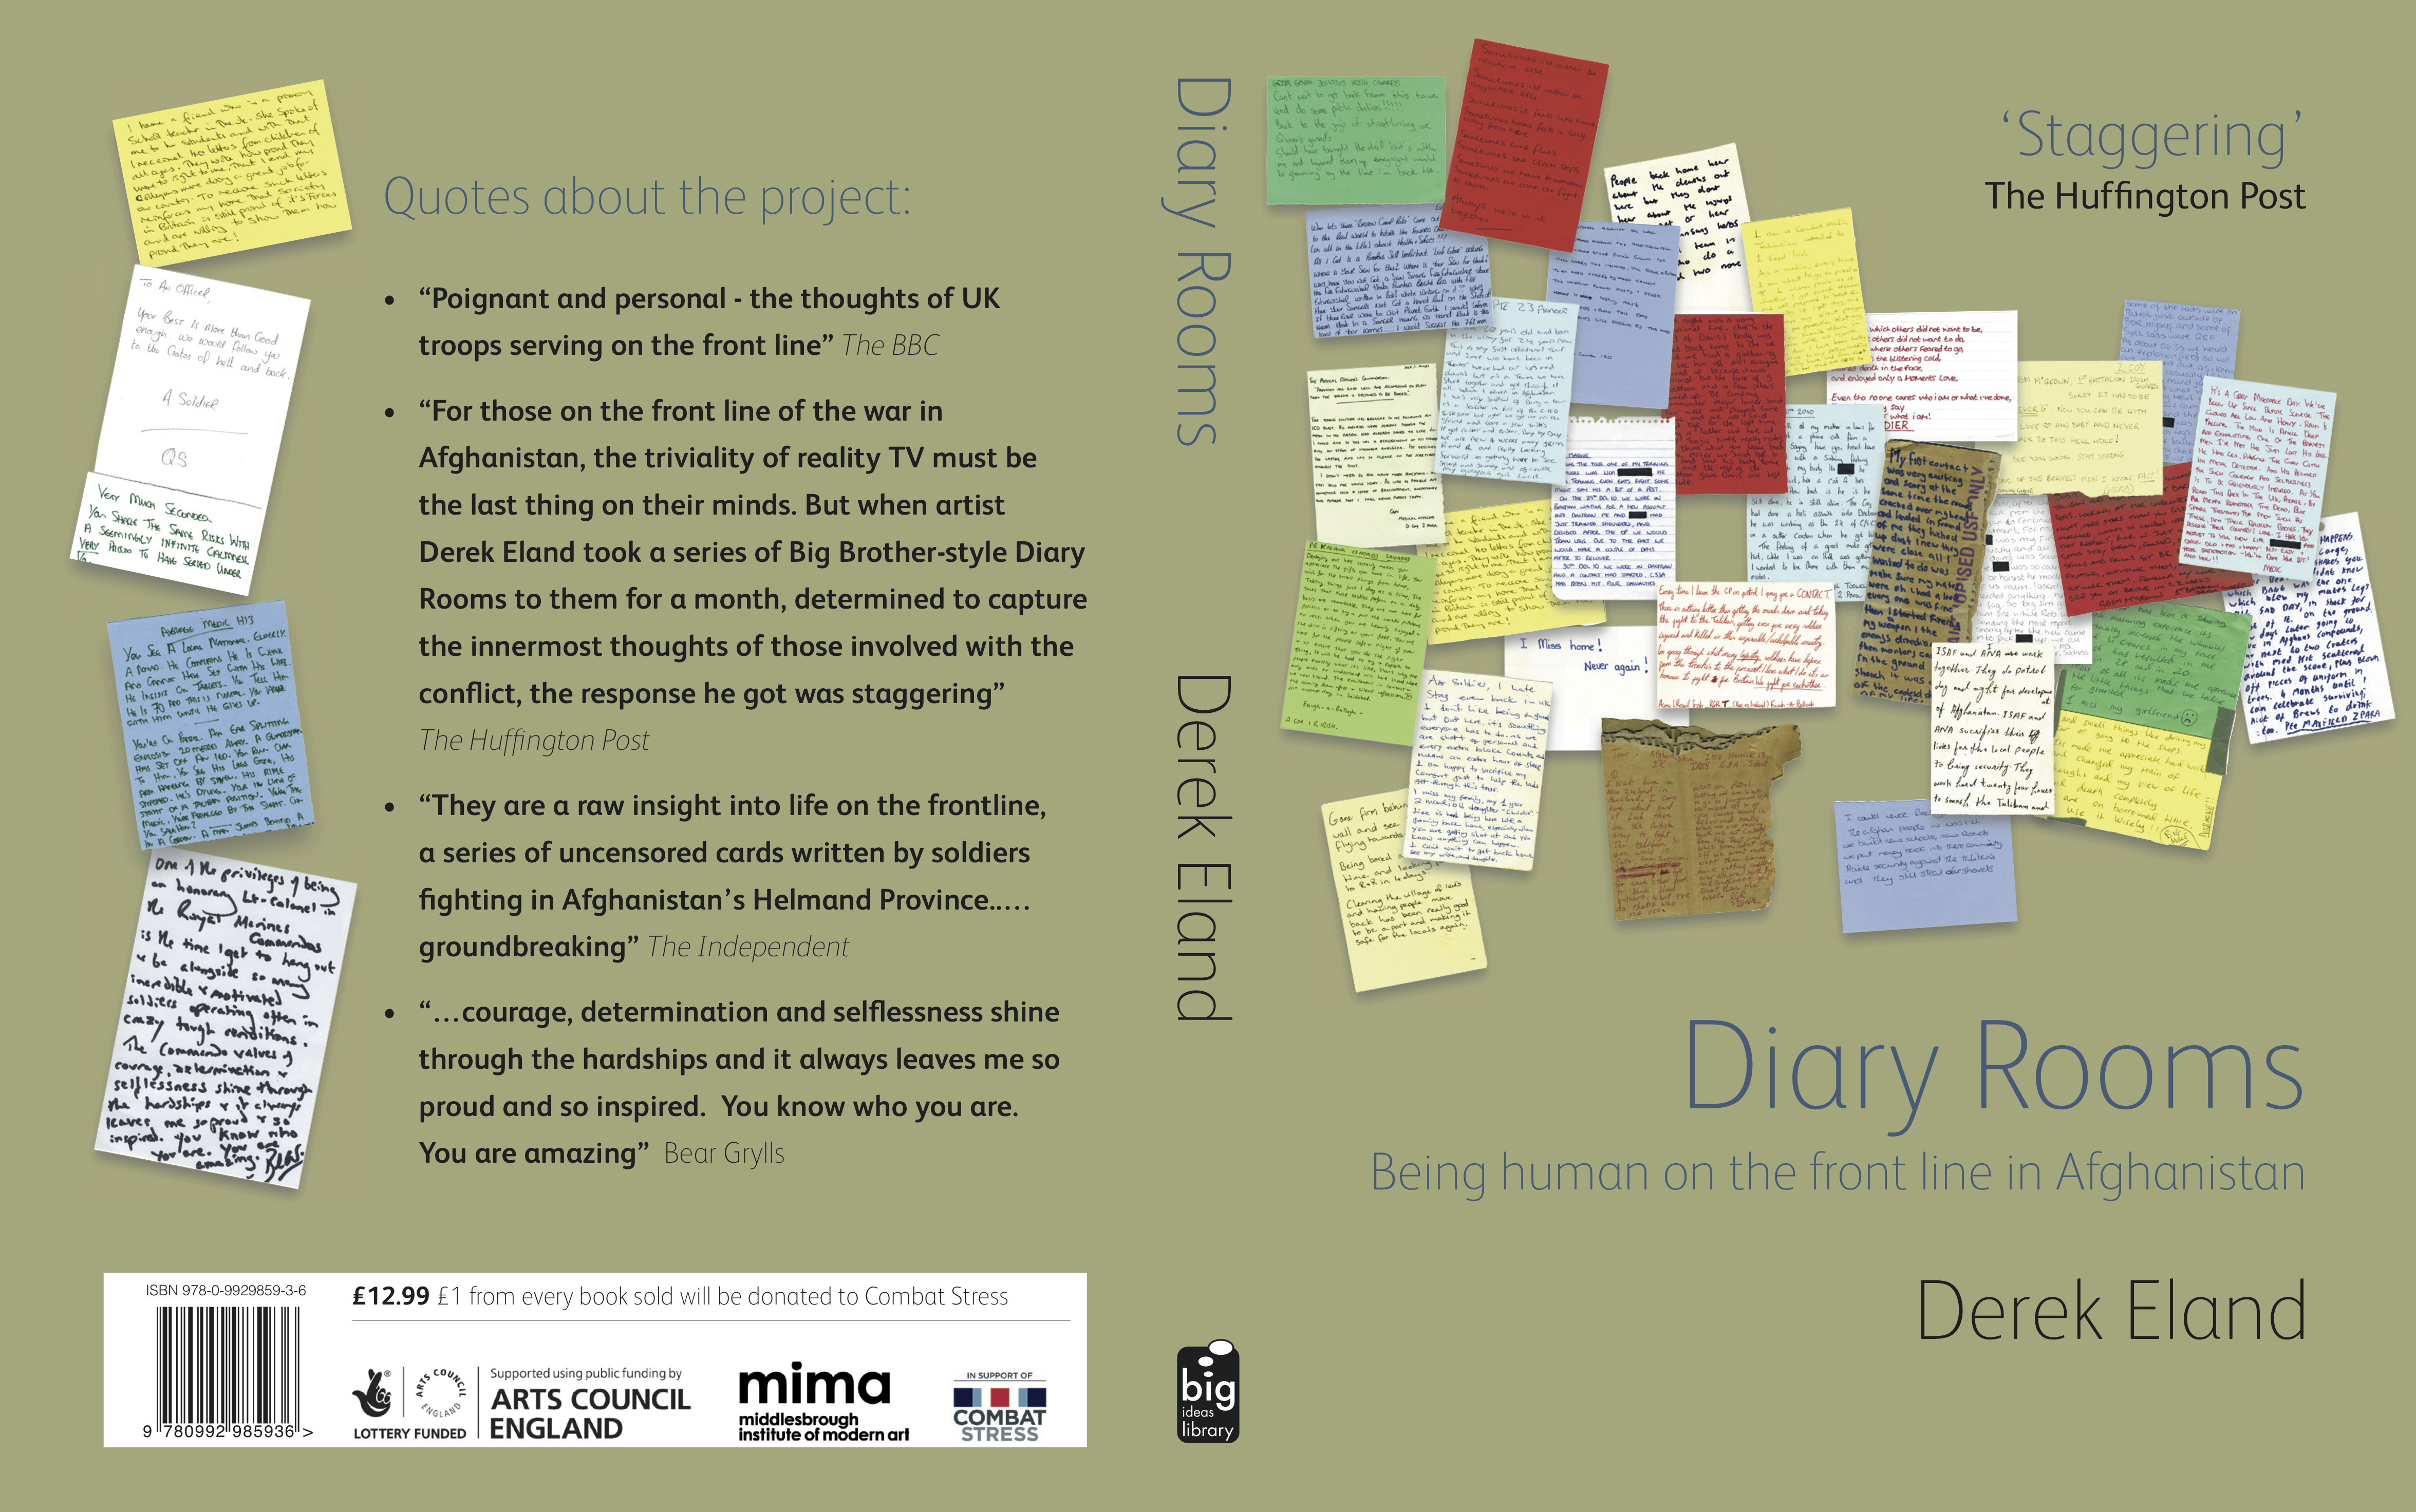 """""""Derek Eland. Diary Rooms: Being Human on the Front Line in Afghanistan. (Book cover and back)"""""""